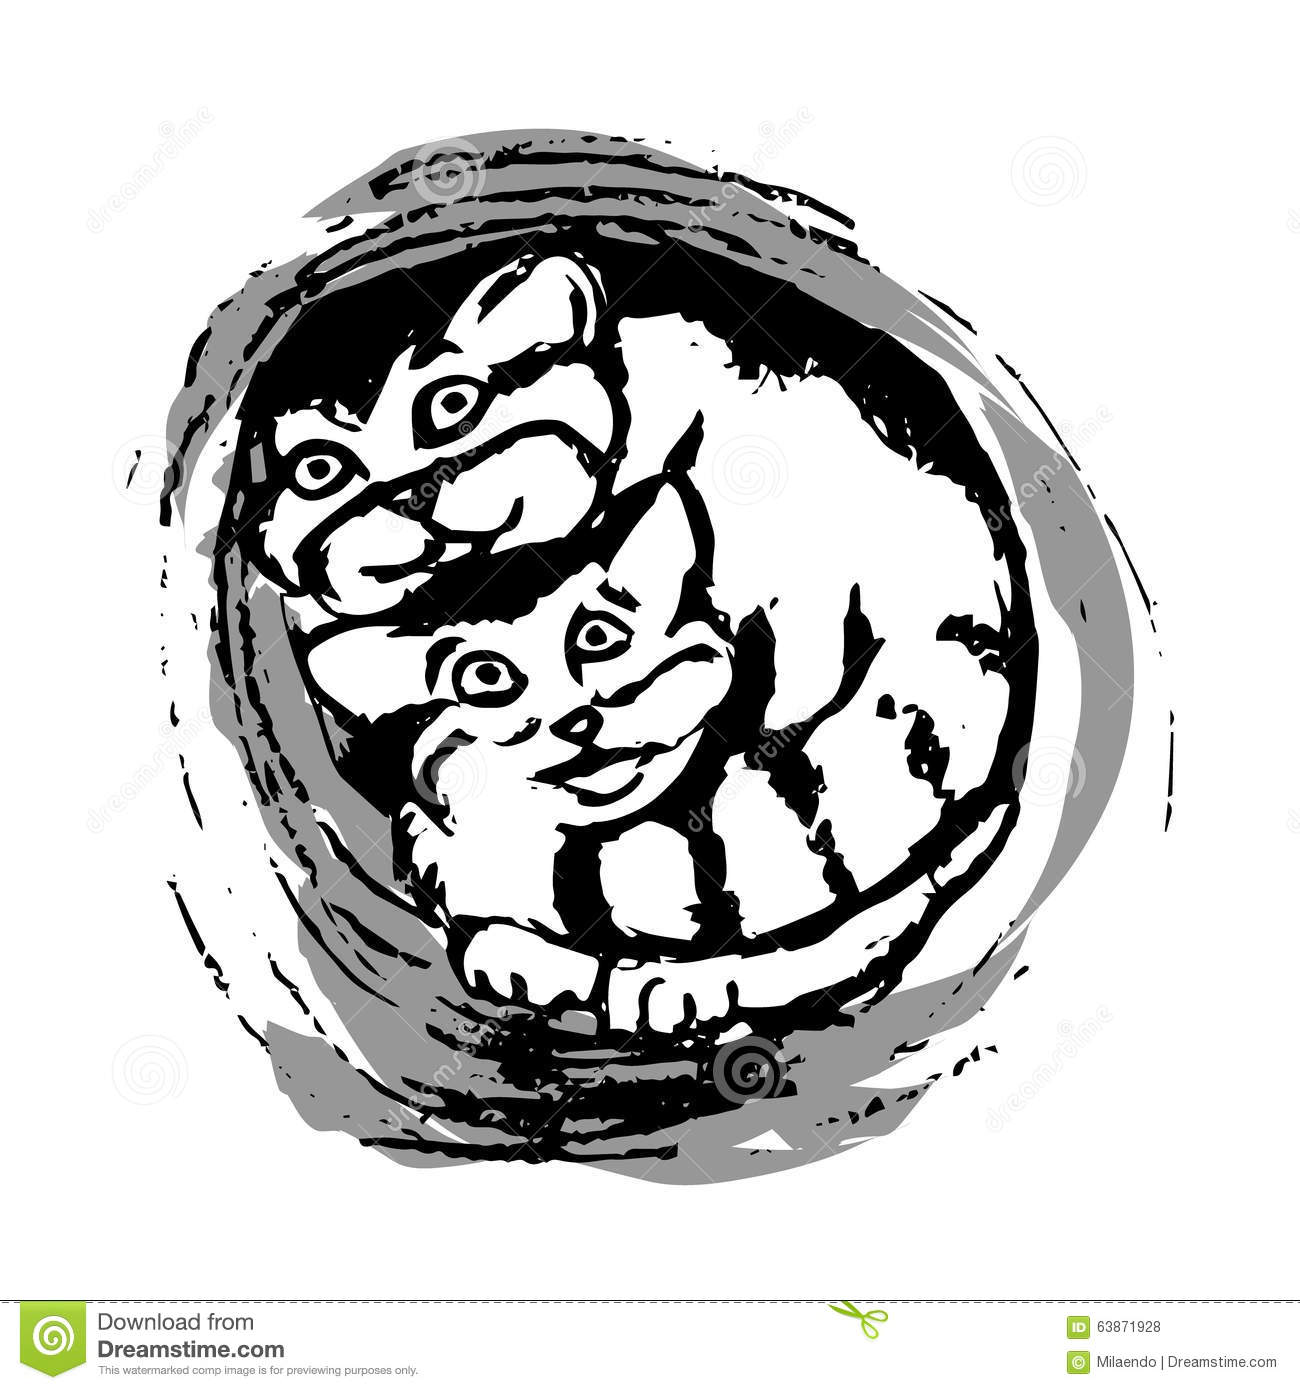 Palla's Cat clipart #11, Download drawings